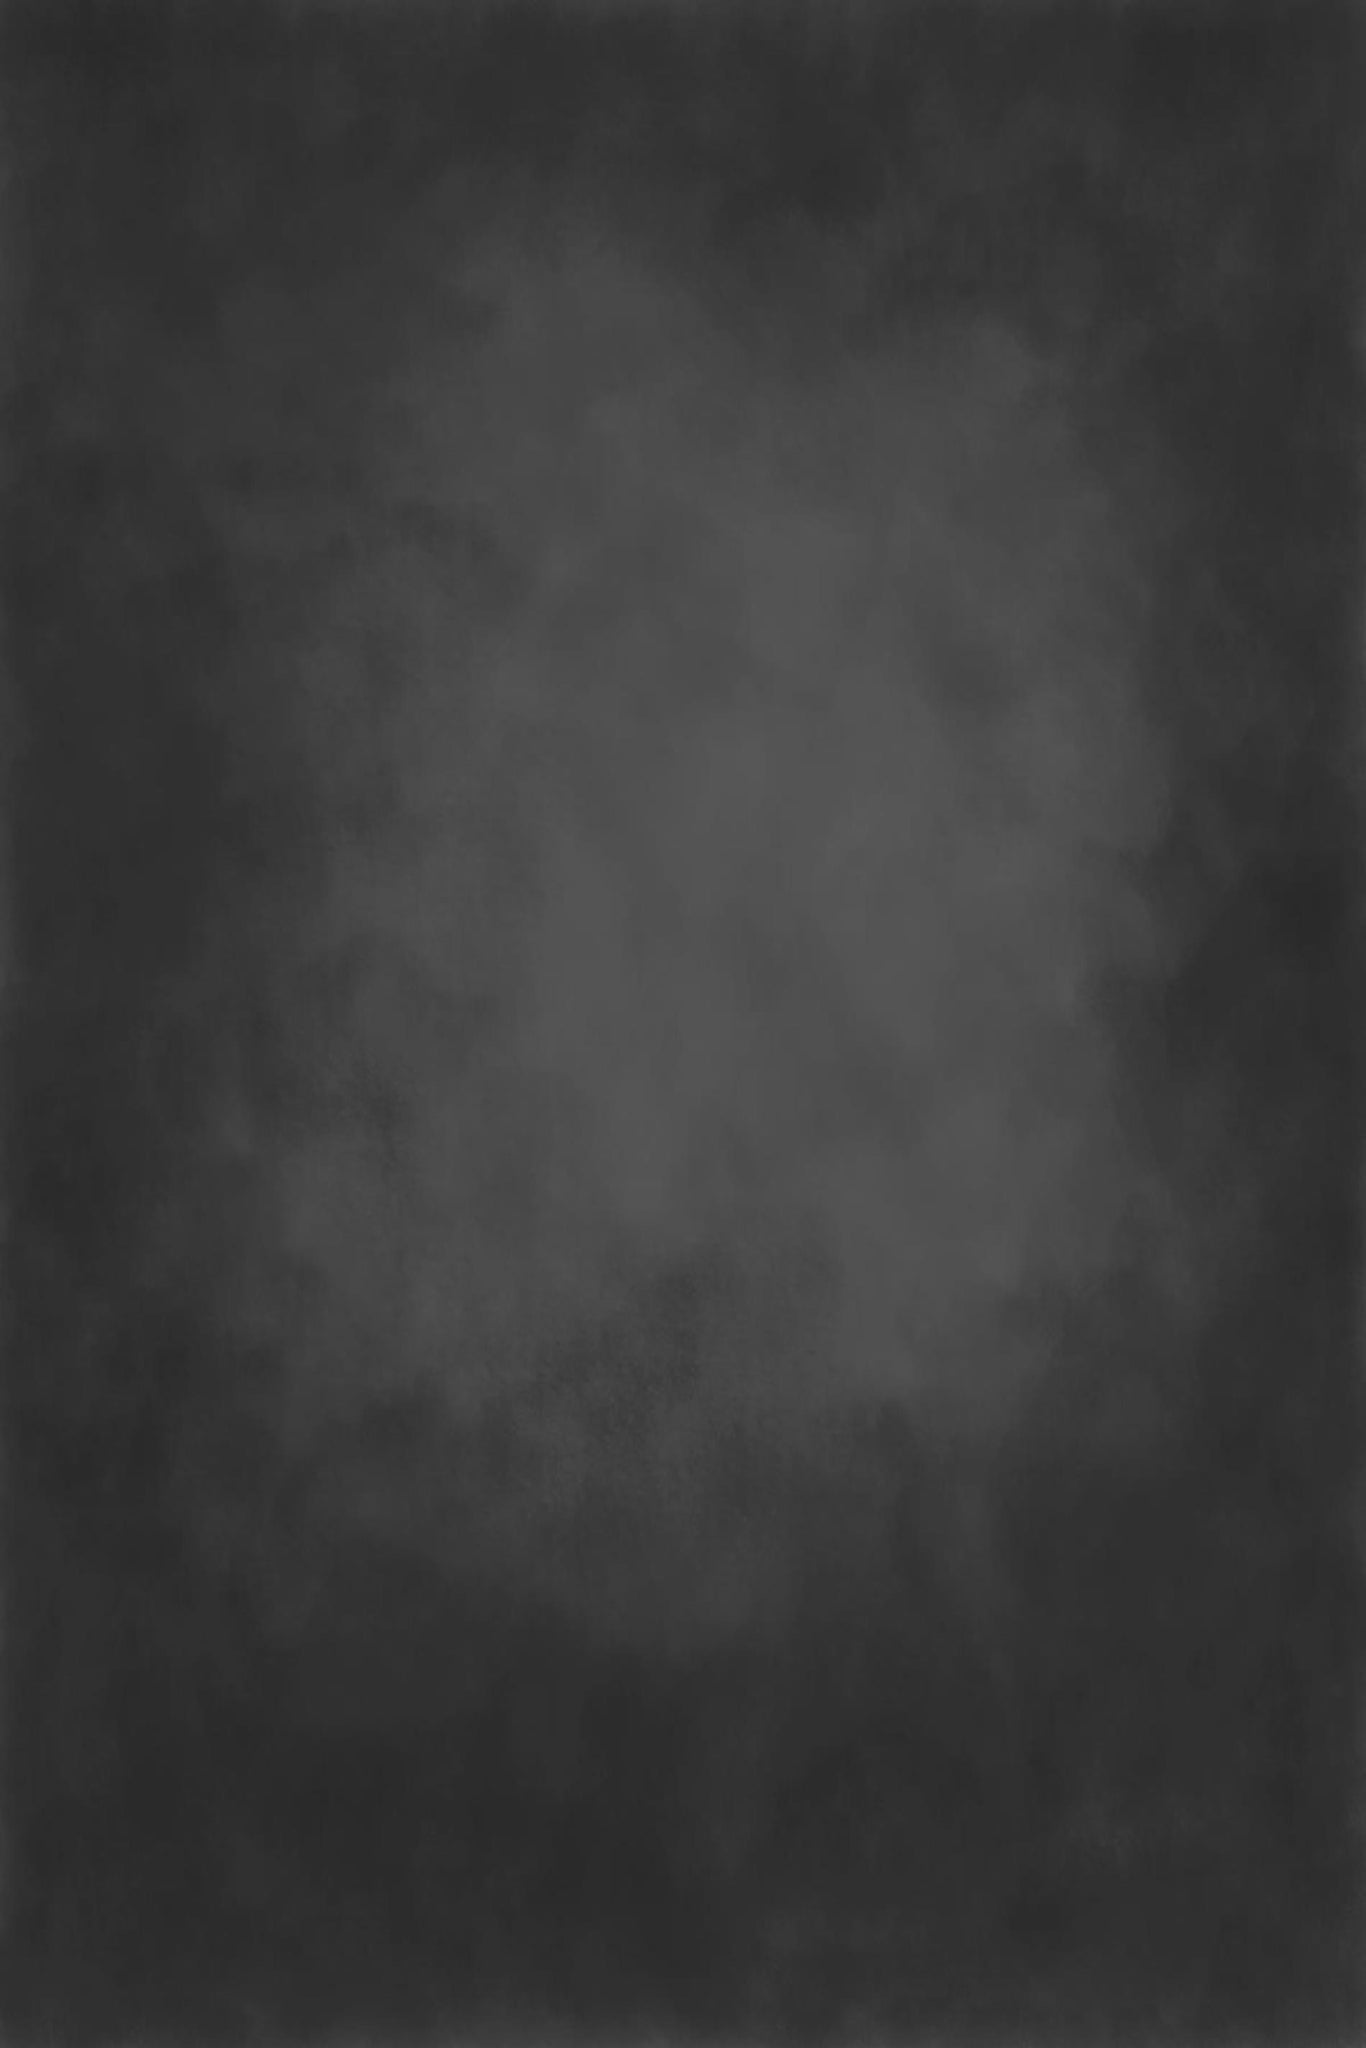 Load image into Gallery viewer, Katebackdrop:Kate Cold Tones Of Gray Oliphant Textured Backdrop